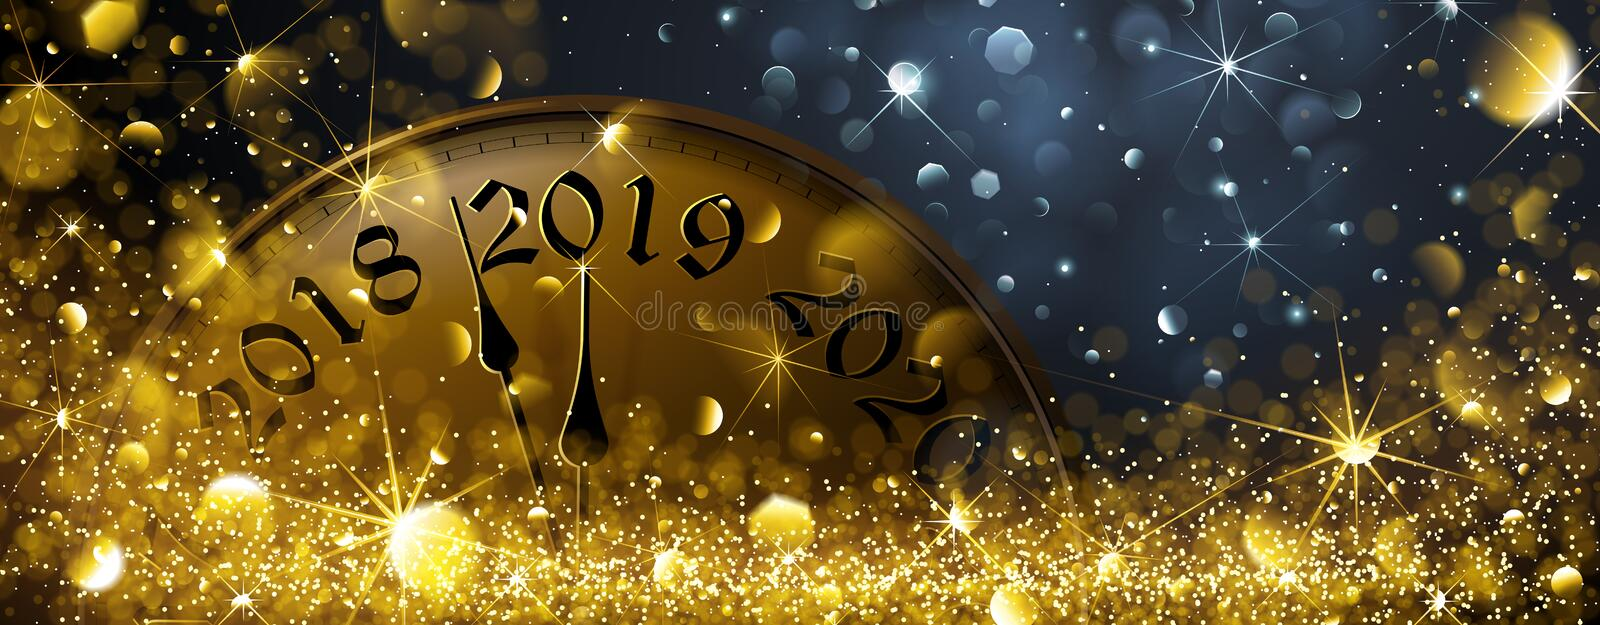 New Year's Eve 2019 vector illustration